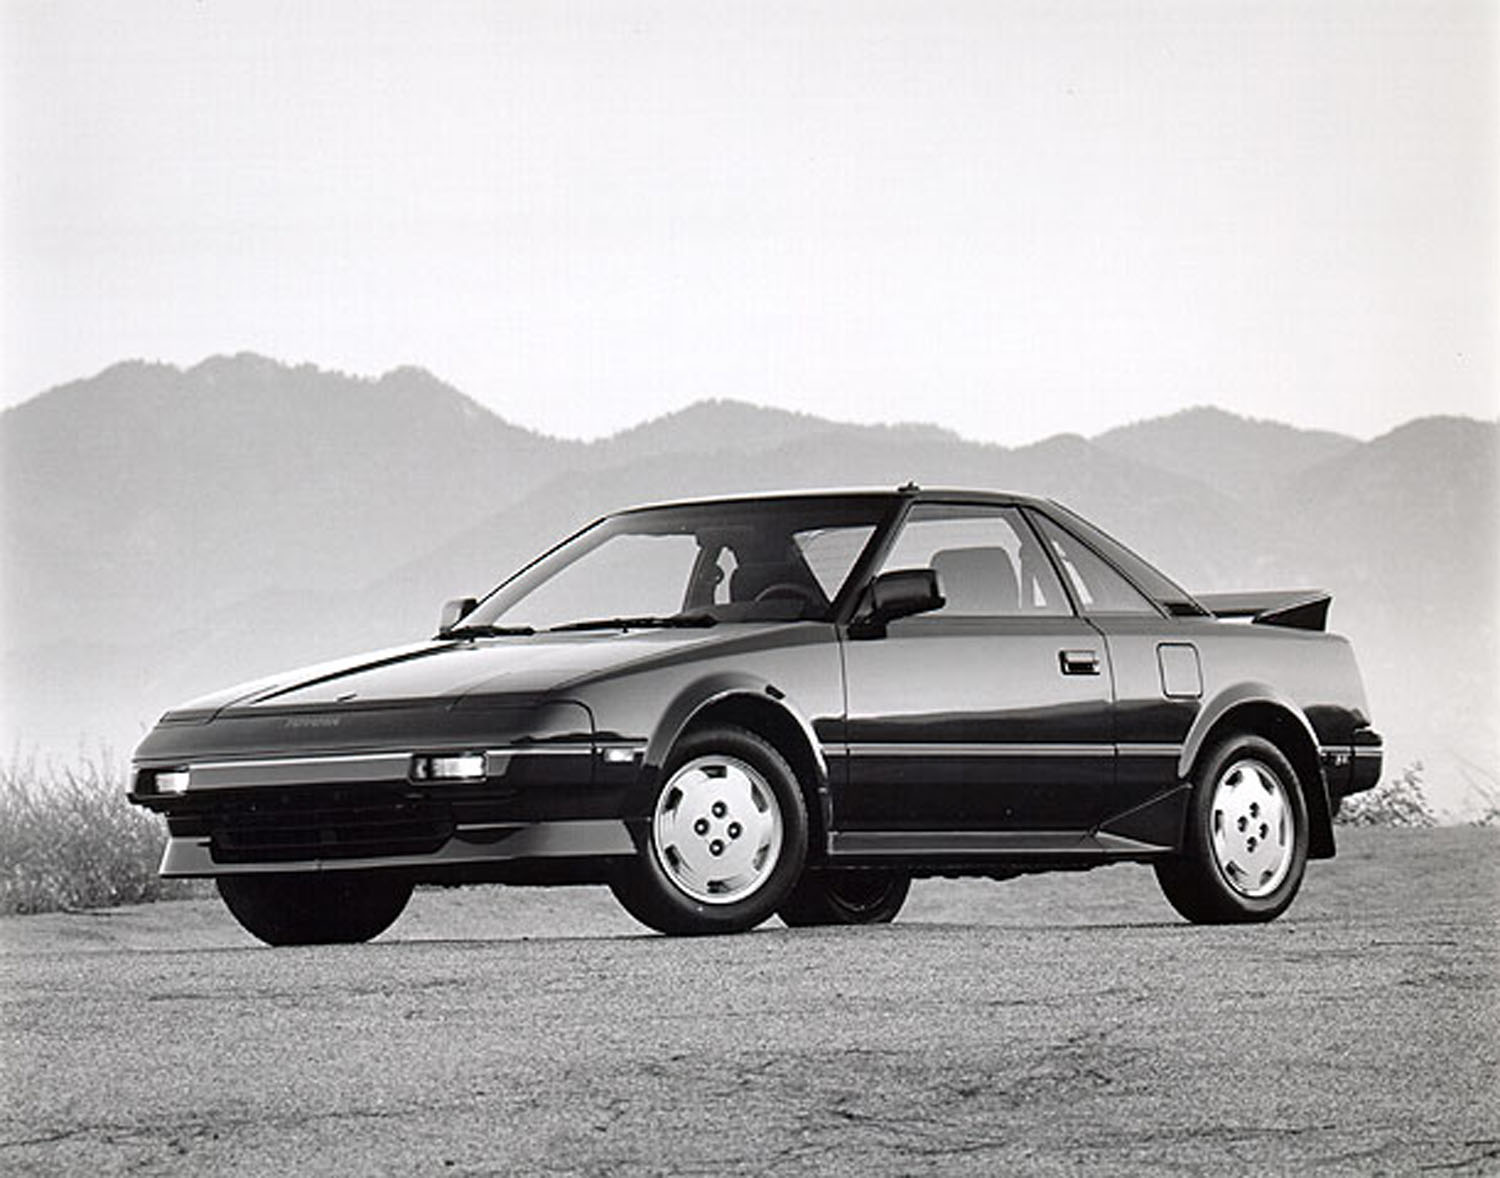 1989 Toyota MR2 front 3/4